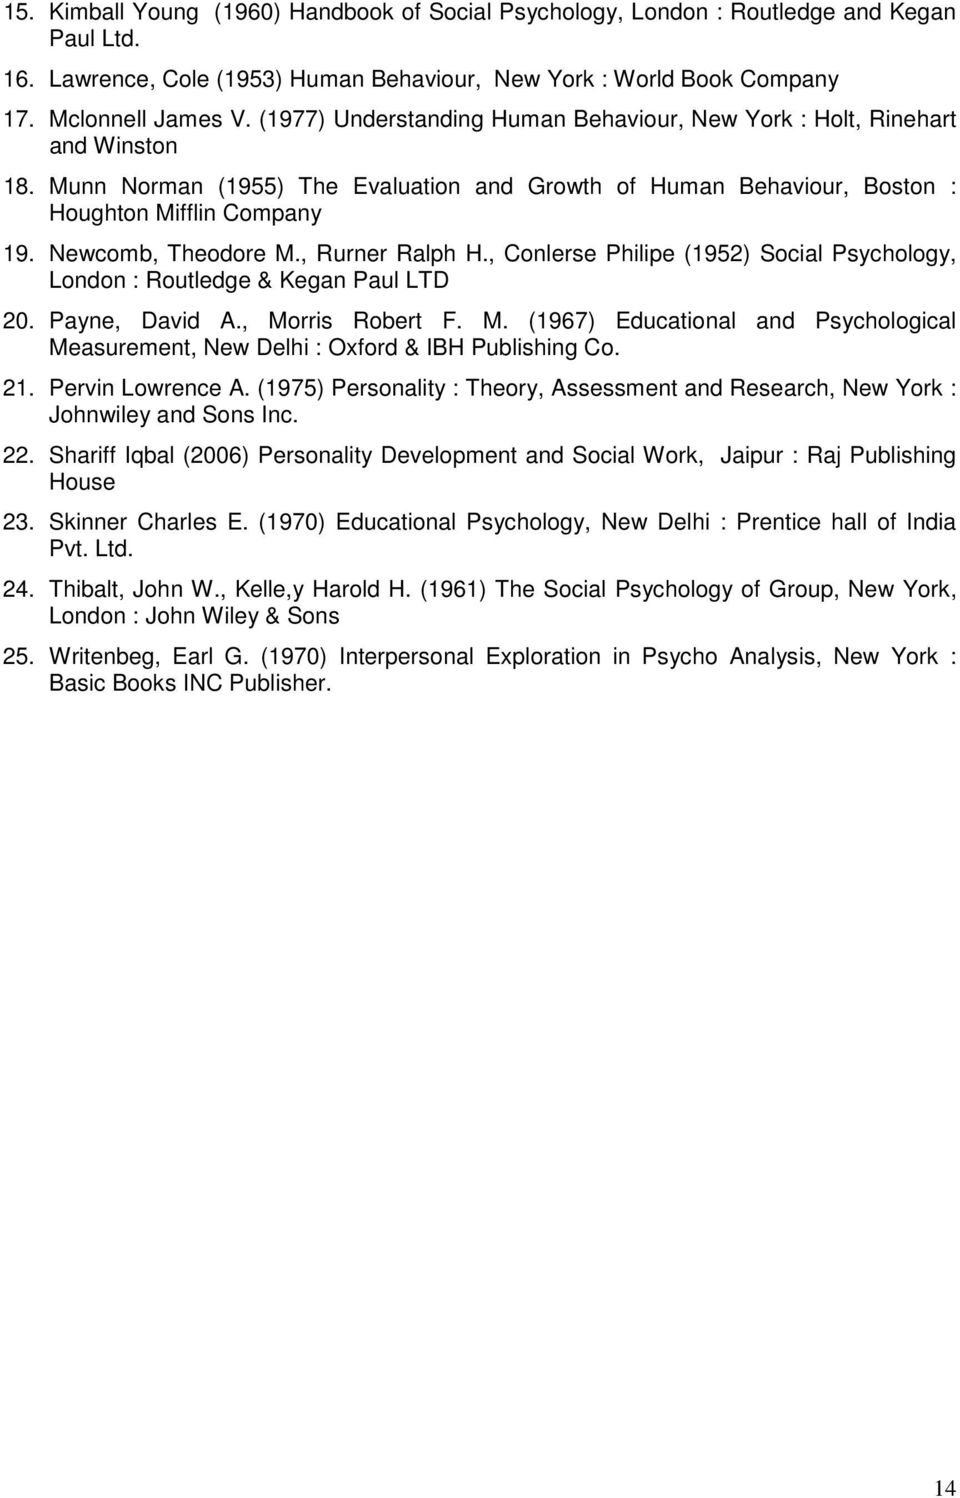 Newcomb, Theodore M., Rurner Ralph H., Conlerse Philipe (1952) Social Psychology, London : Routledge & Kegan Paul LTD 20. Payne, David A., Morris Robert F. M. (1967) Educational and Psychological Measurement, New Delhi : Oxford & IBH Publishing Co.